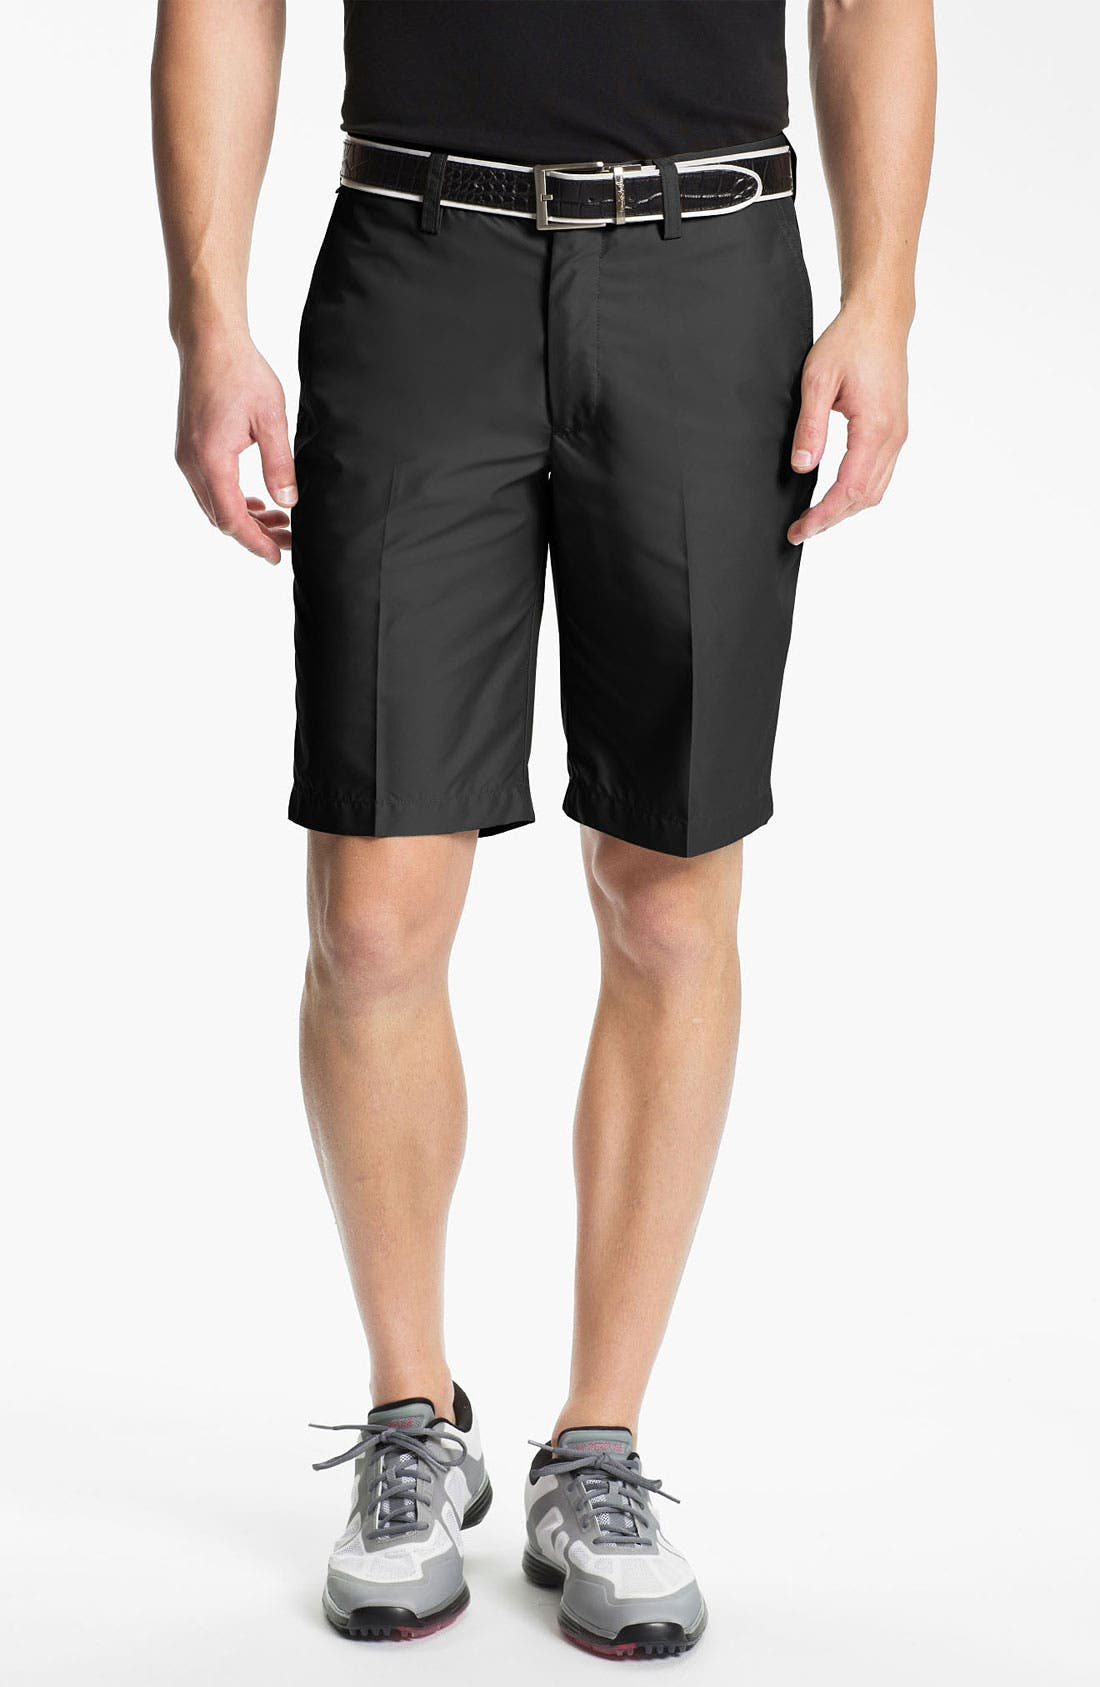 Alternate Image 1 Selected - J. Lindeberg 'True' Flat Front Micro Twill Shorts (Online Only)